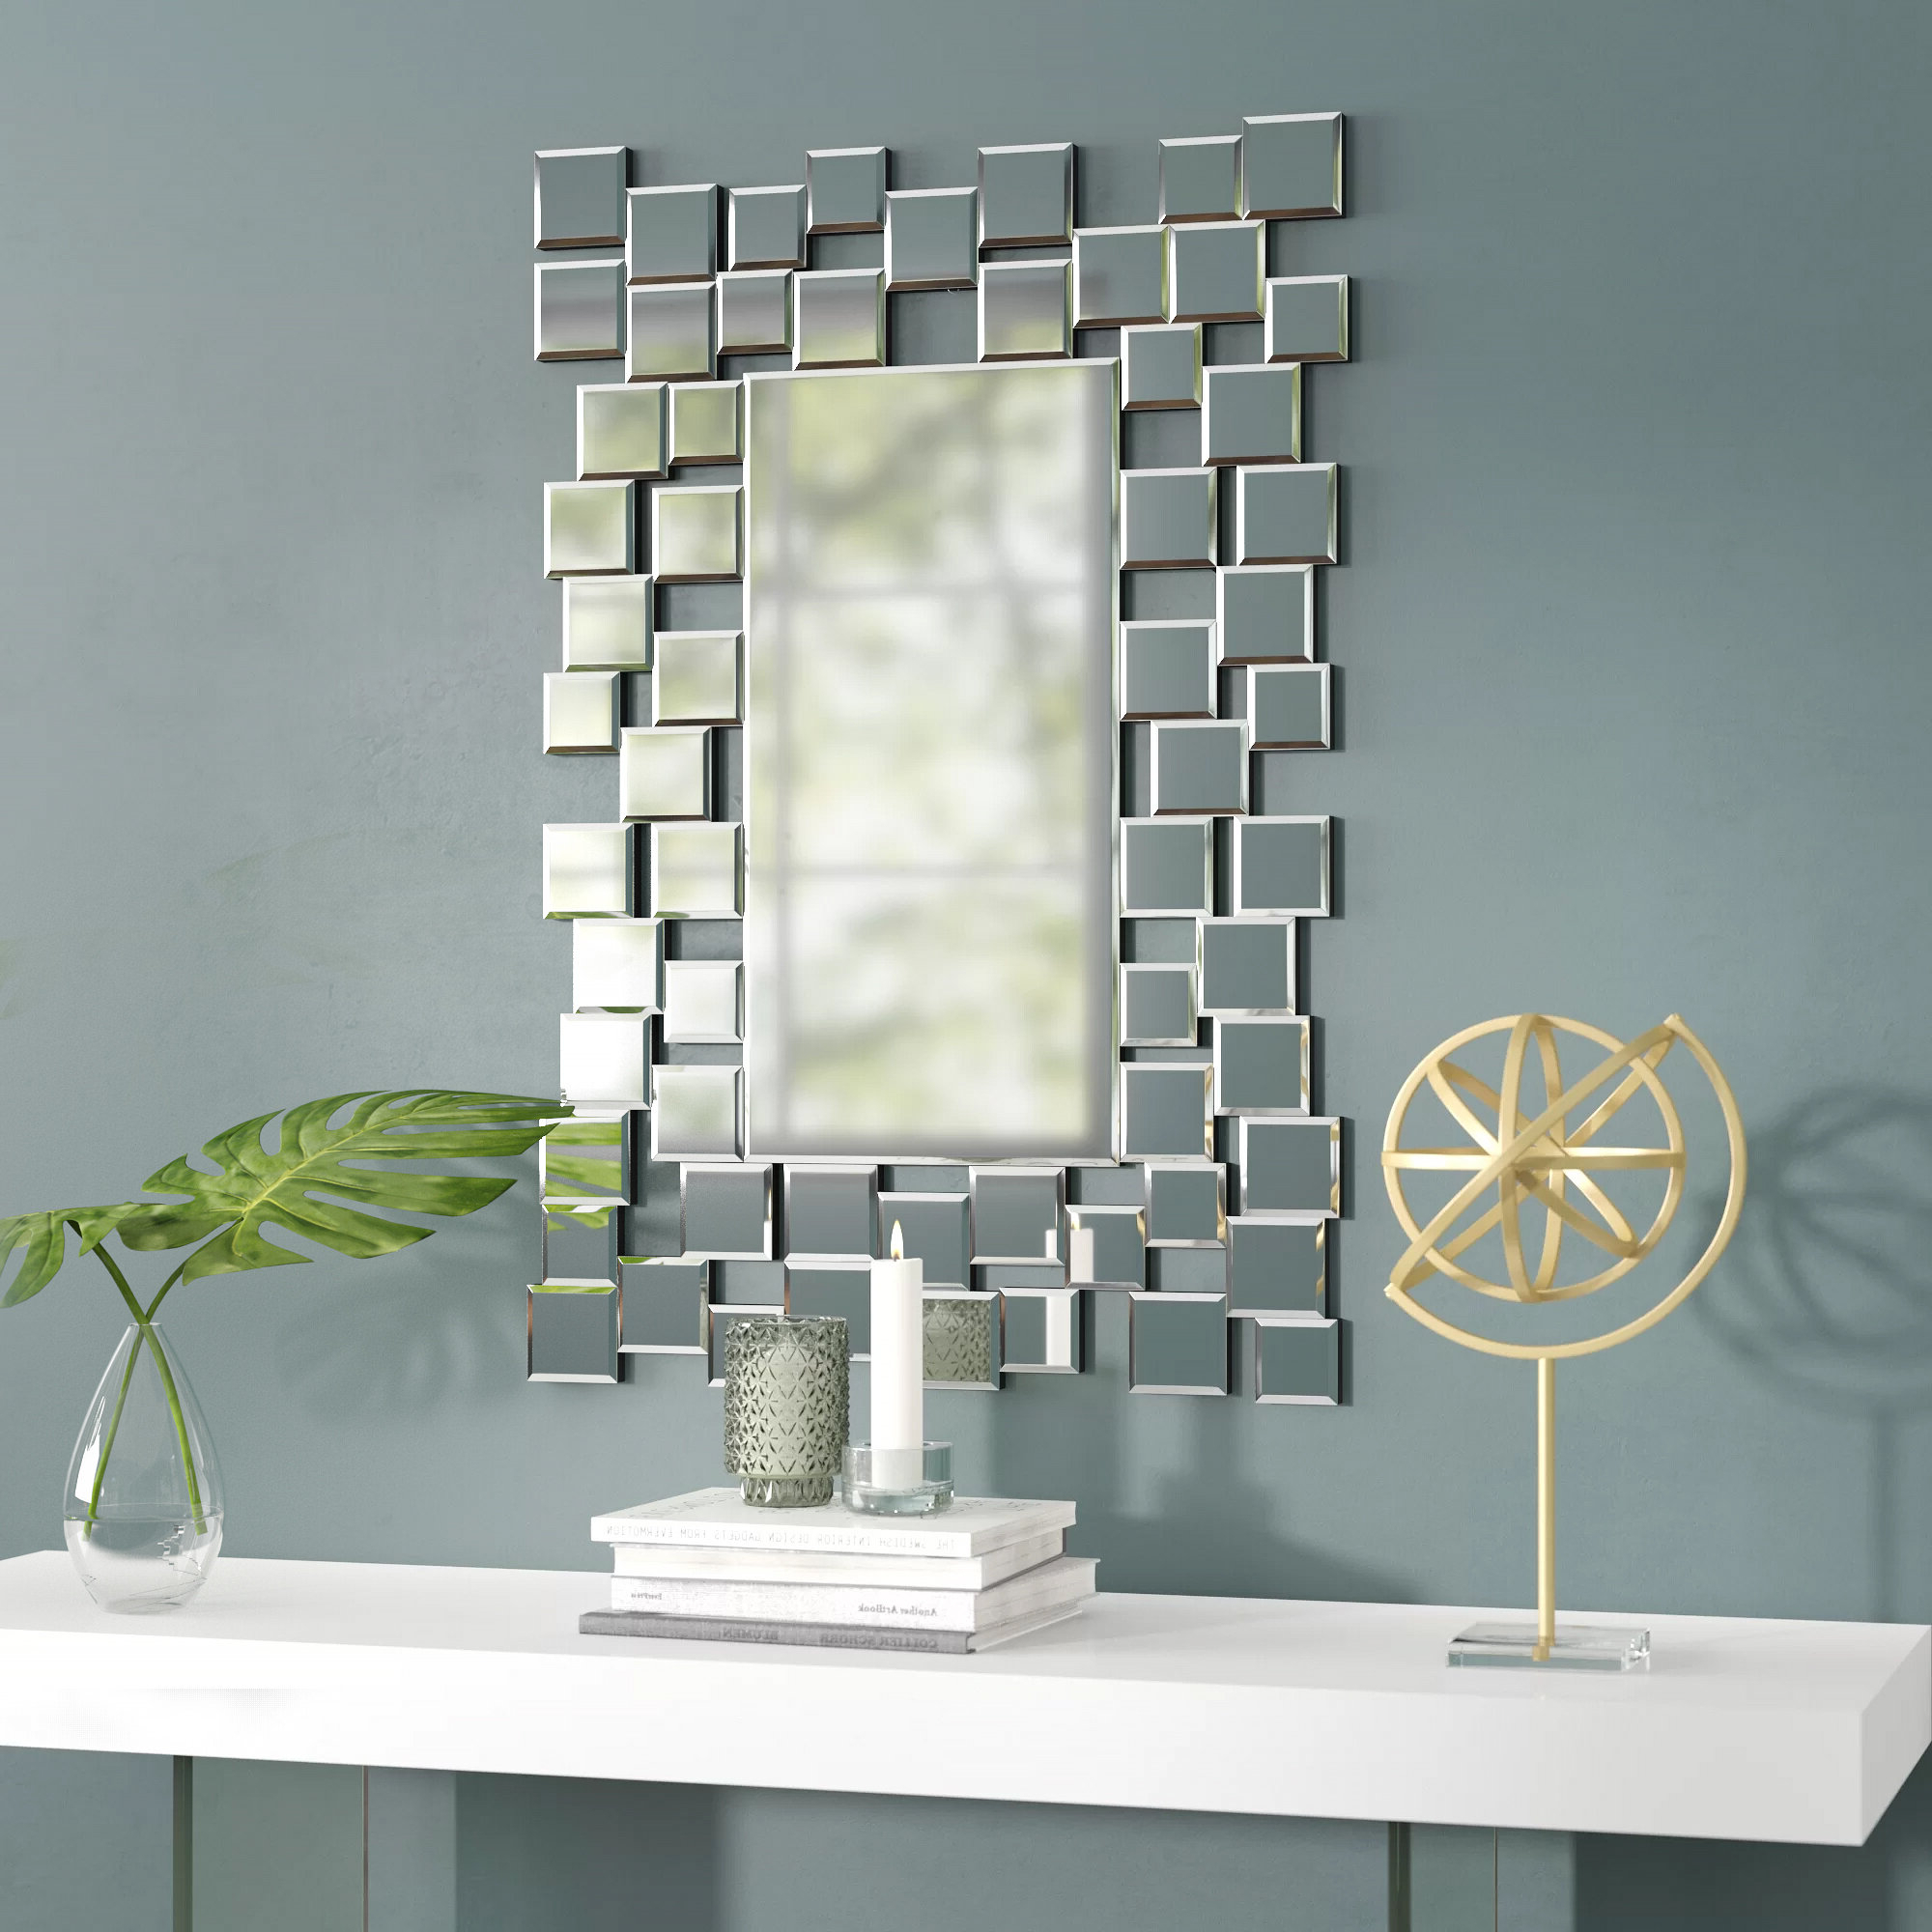 Most Current Pennsburg Rectangle Wall Mirrors With Regard To Brayden Studio Modern & Contemporary Accent Wall Mirror (View 5 of 20)